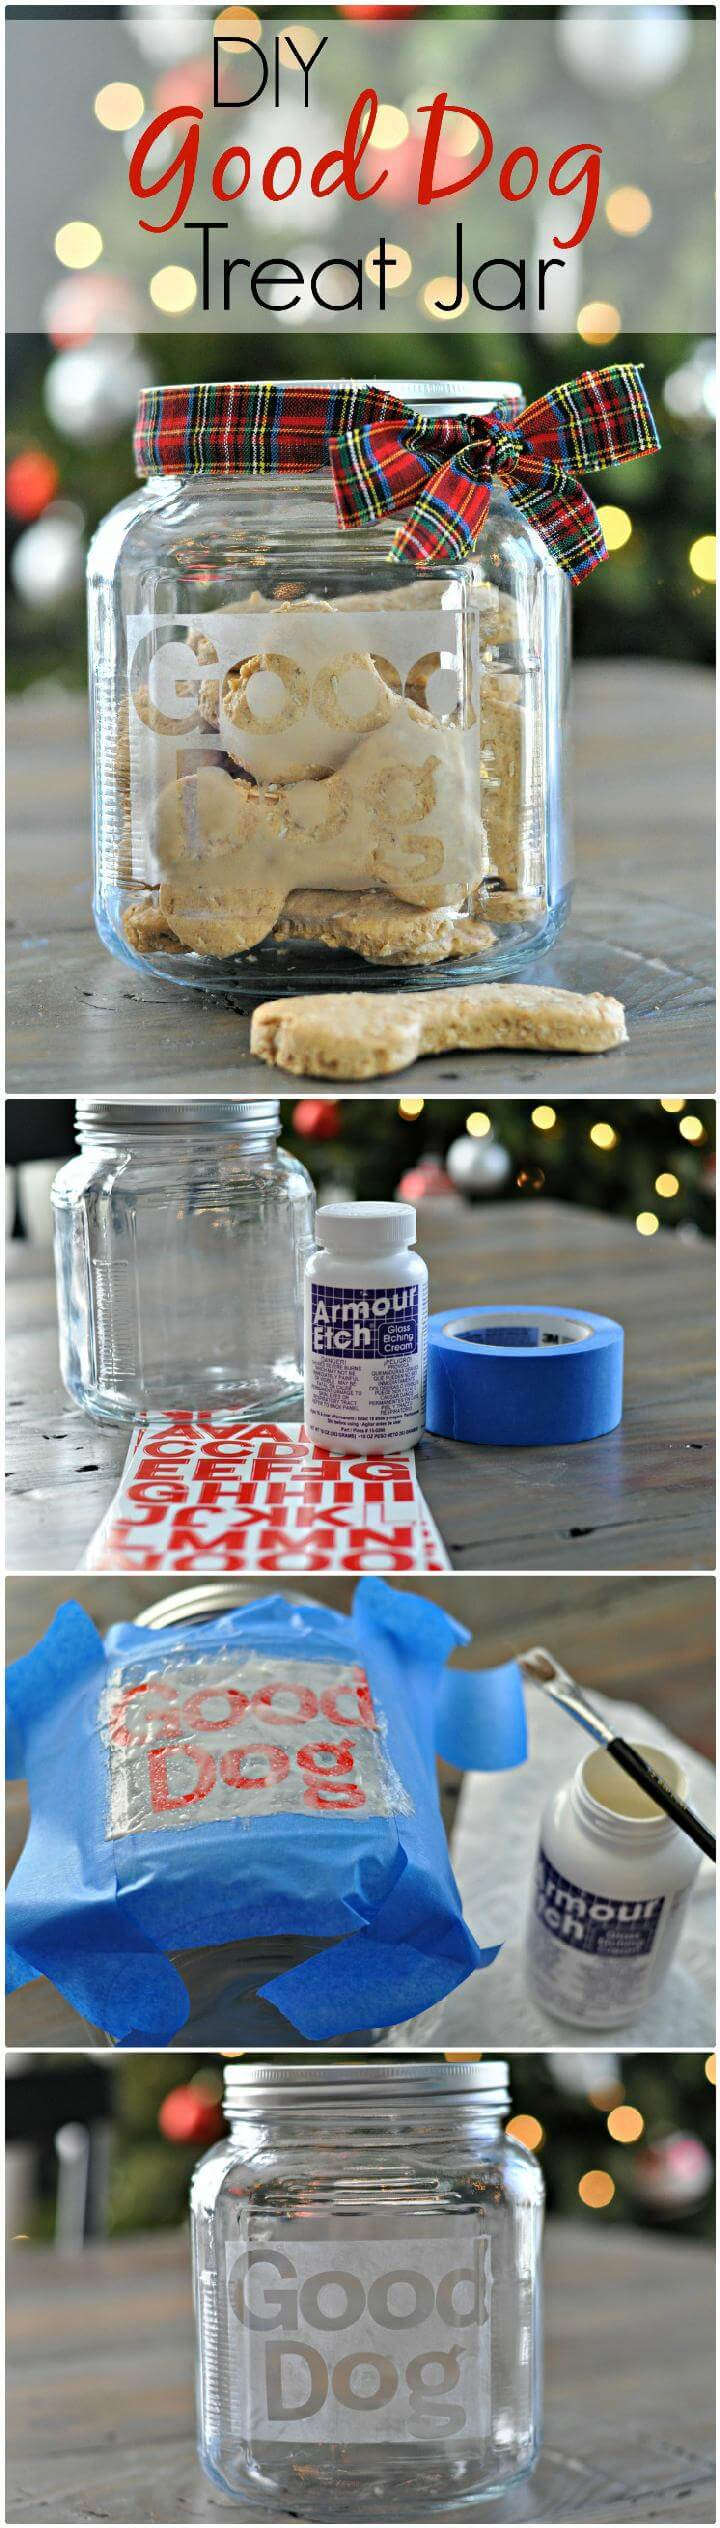 DIY Mason Jar Good Dog Treat Gift